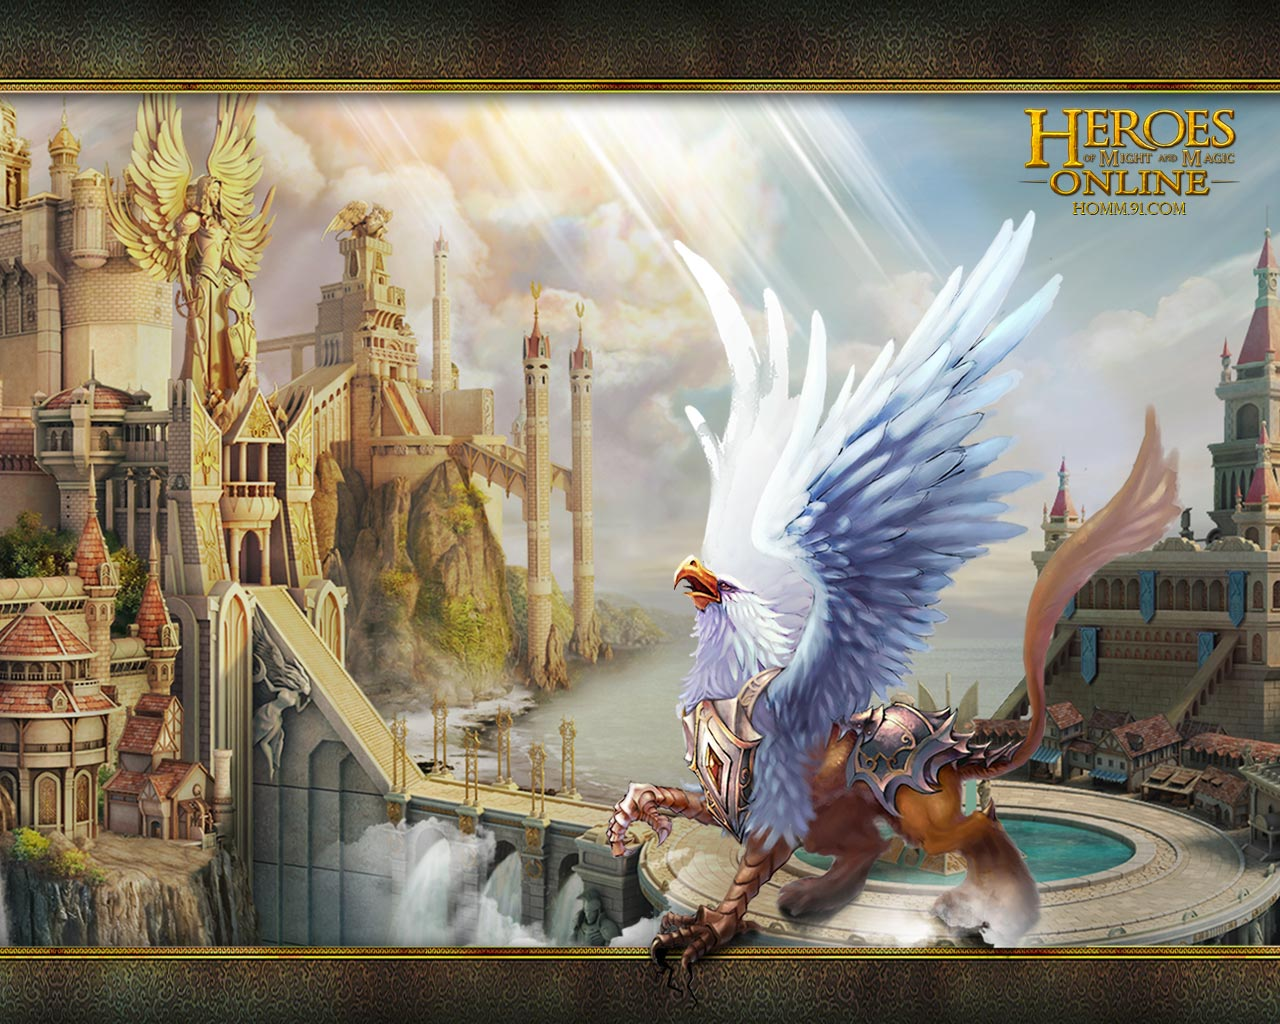 Heroes Of Might And Magic Online #7